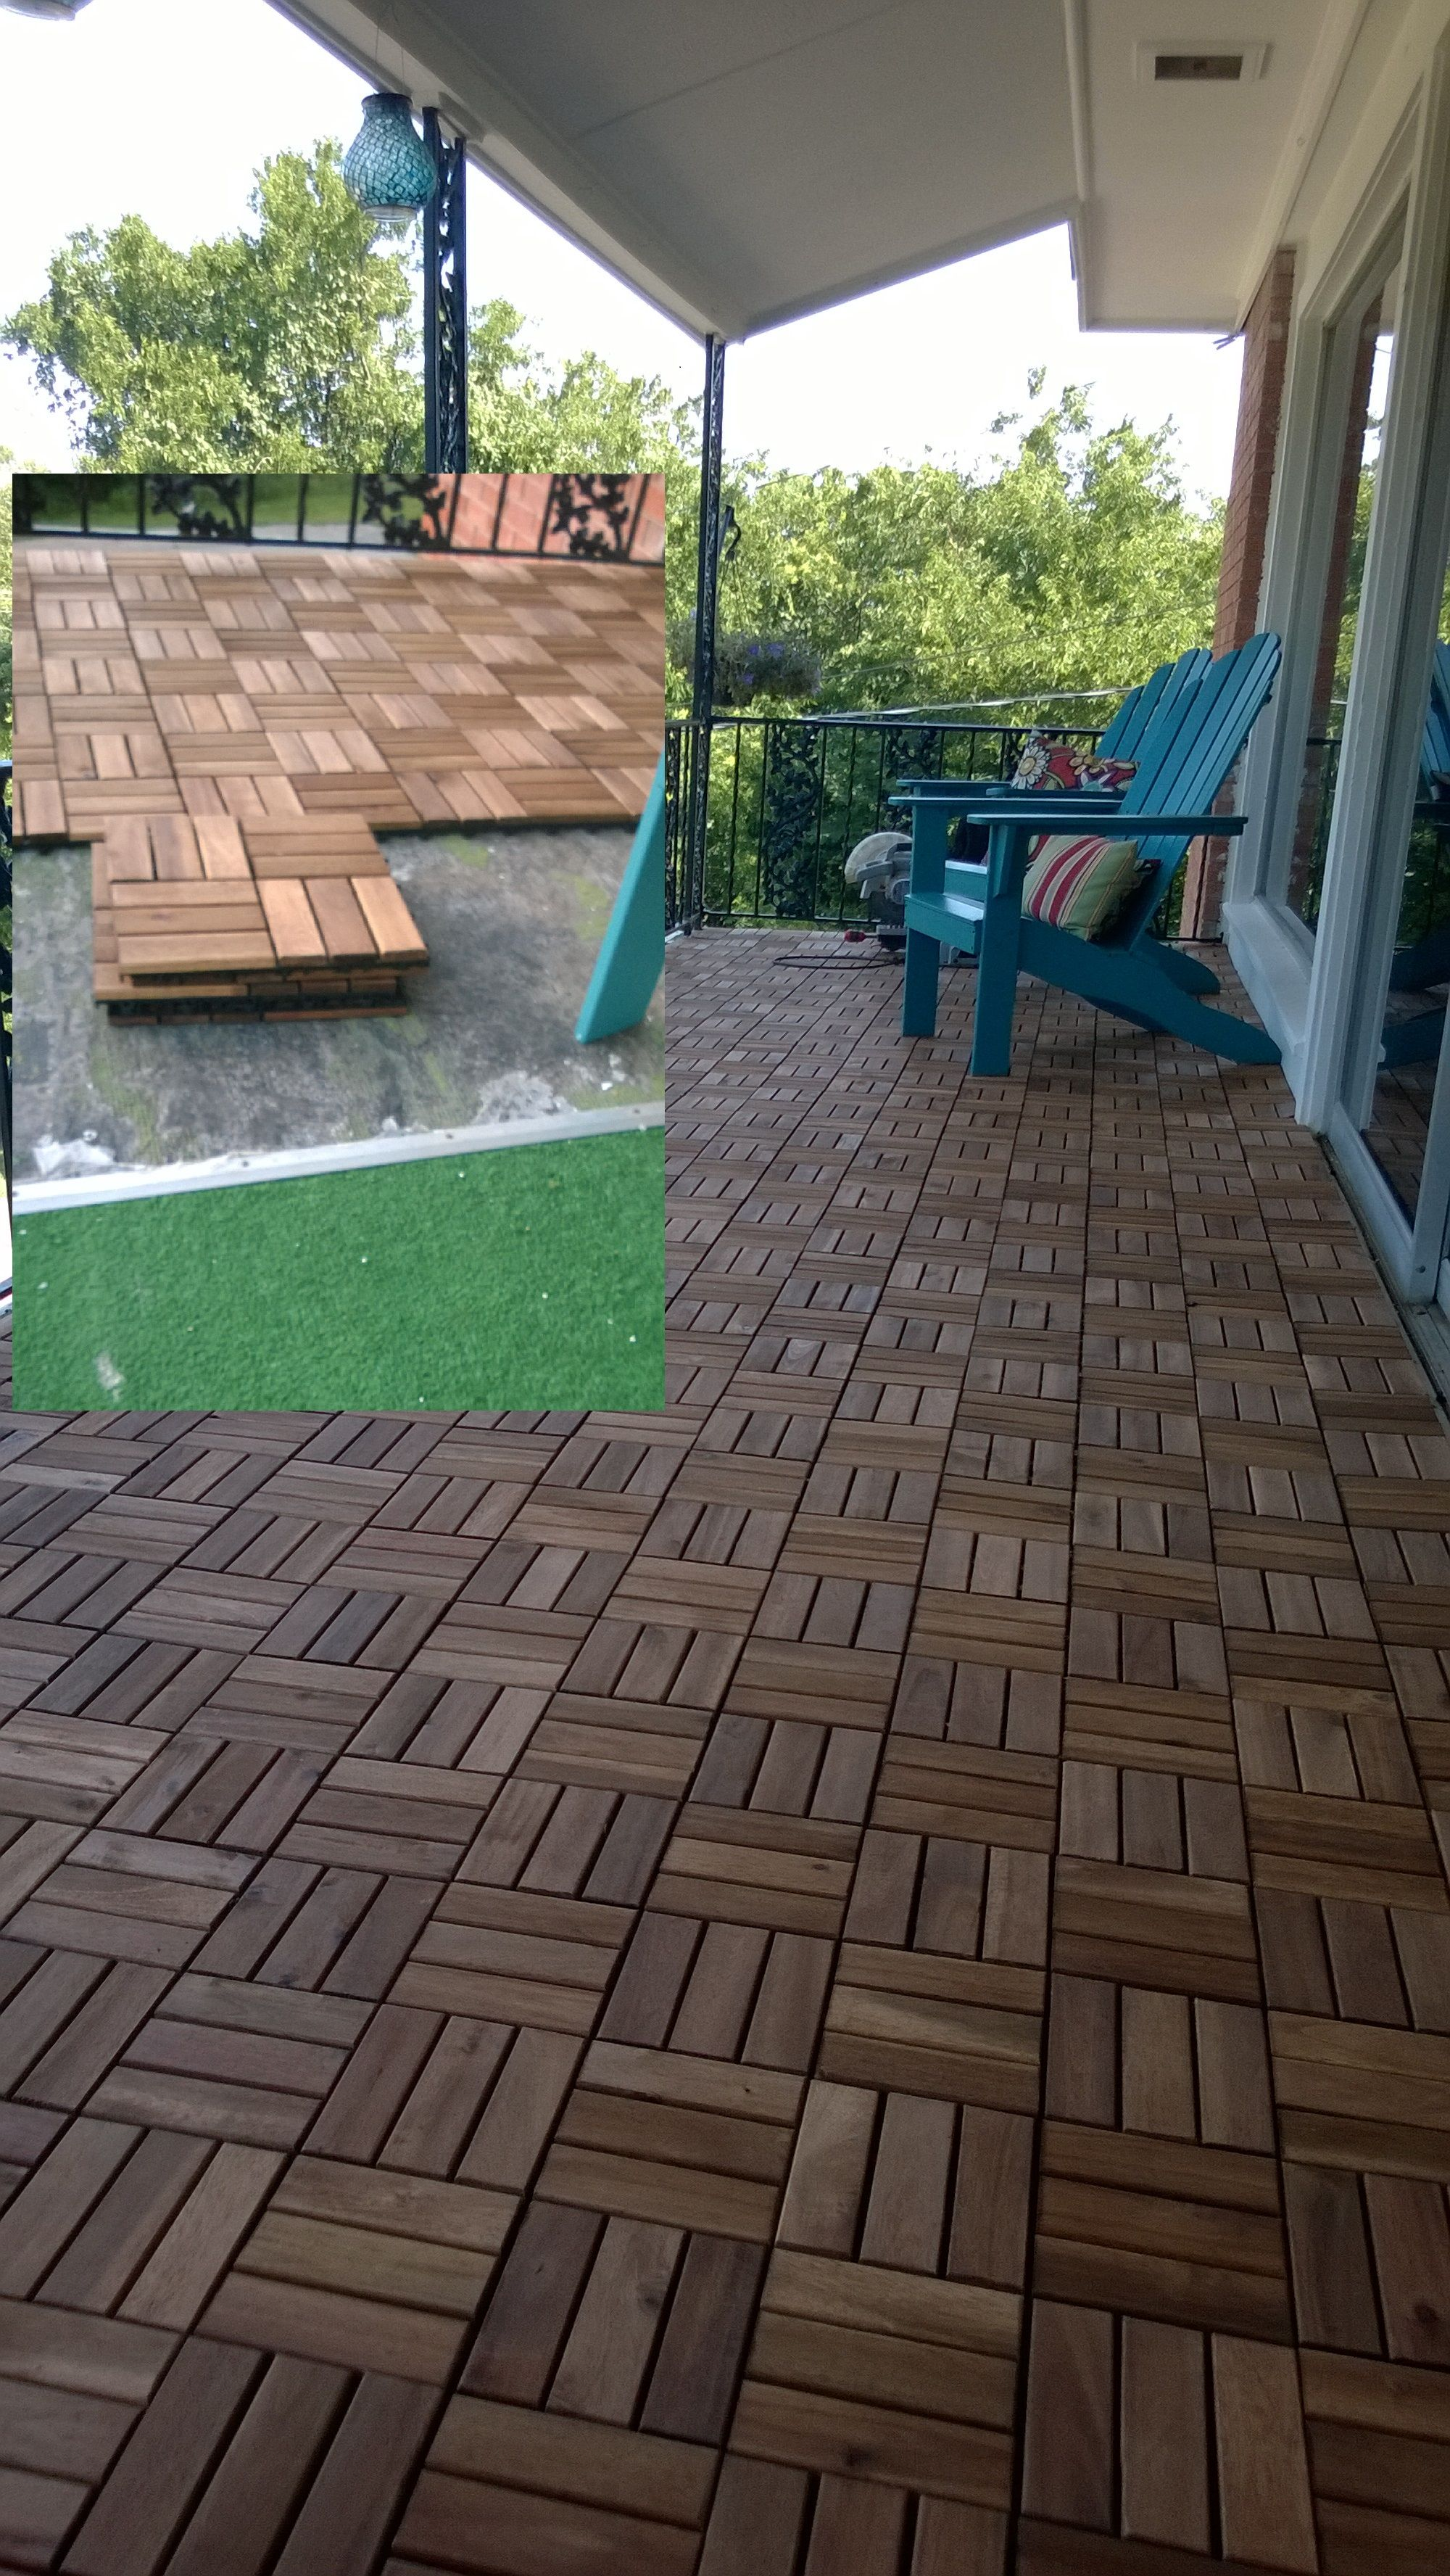 Covered the many layers of astroturf with ikea acacia deck tiles covered the many layers of astroturf with ikea acacia deck tiles dailygadgetfo Gallery